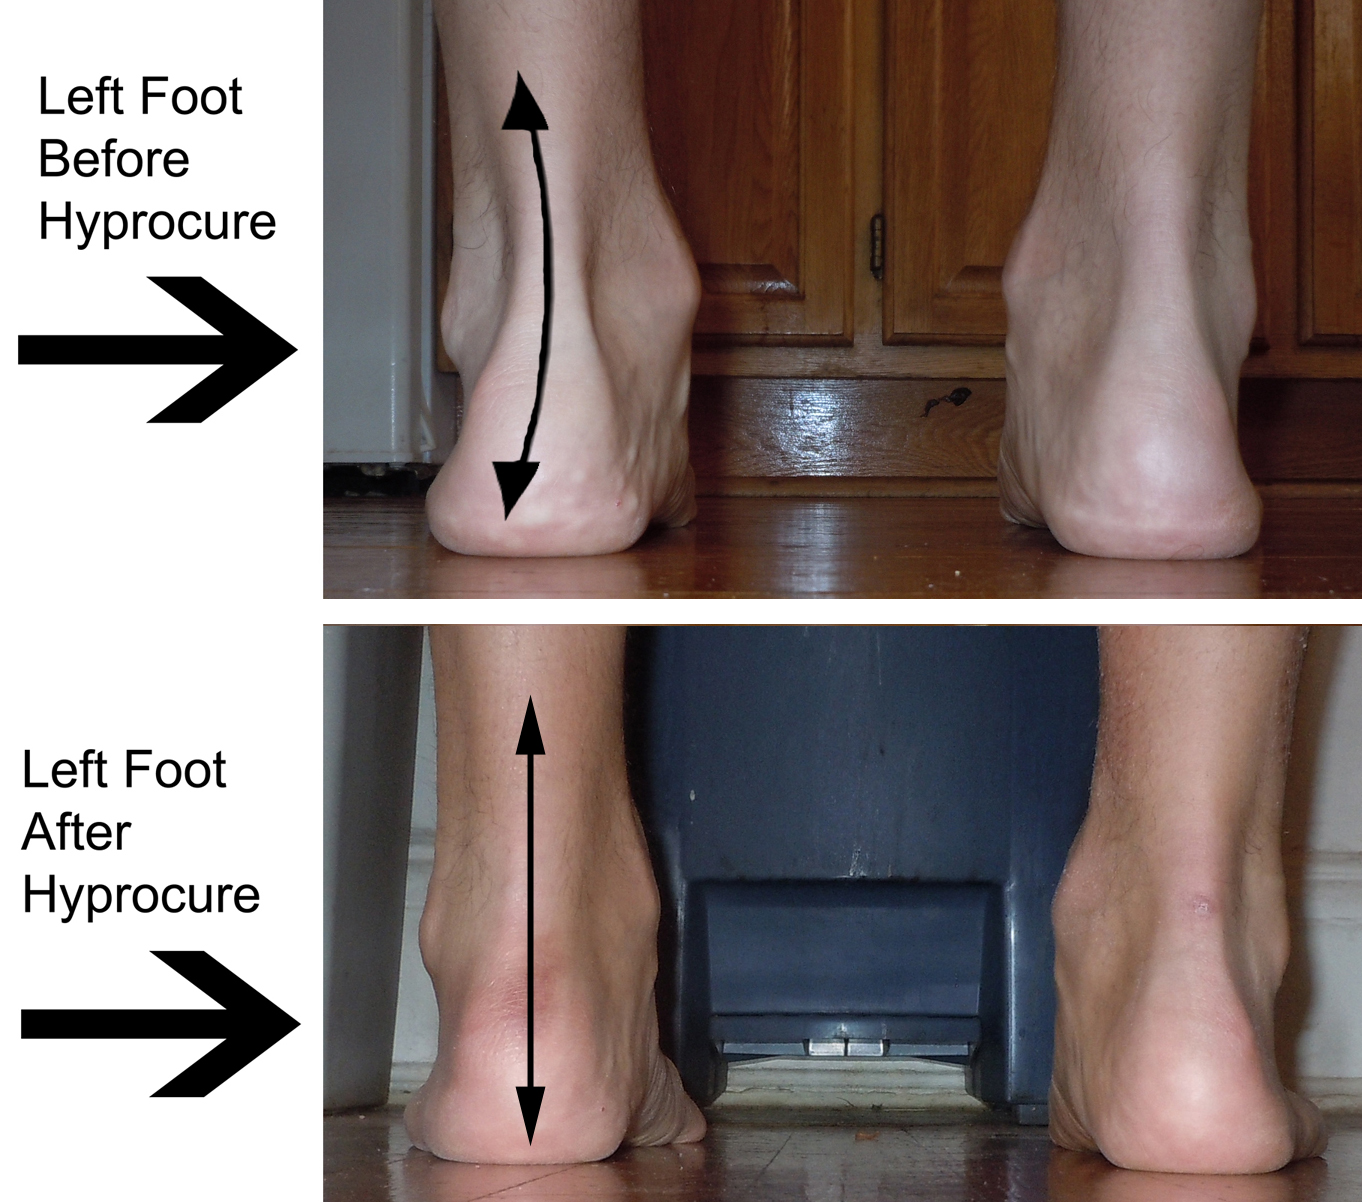 Hyprocure Implant - Flat Feet Corrective Surgery Ankle Pronation Surgery